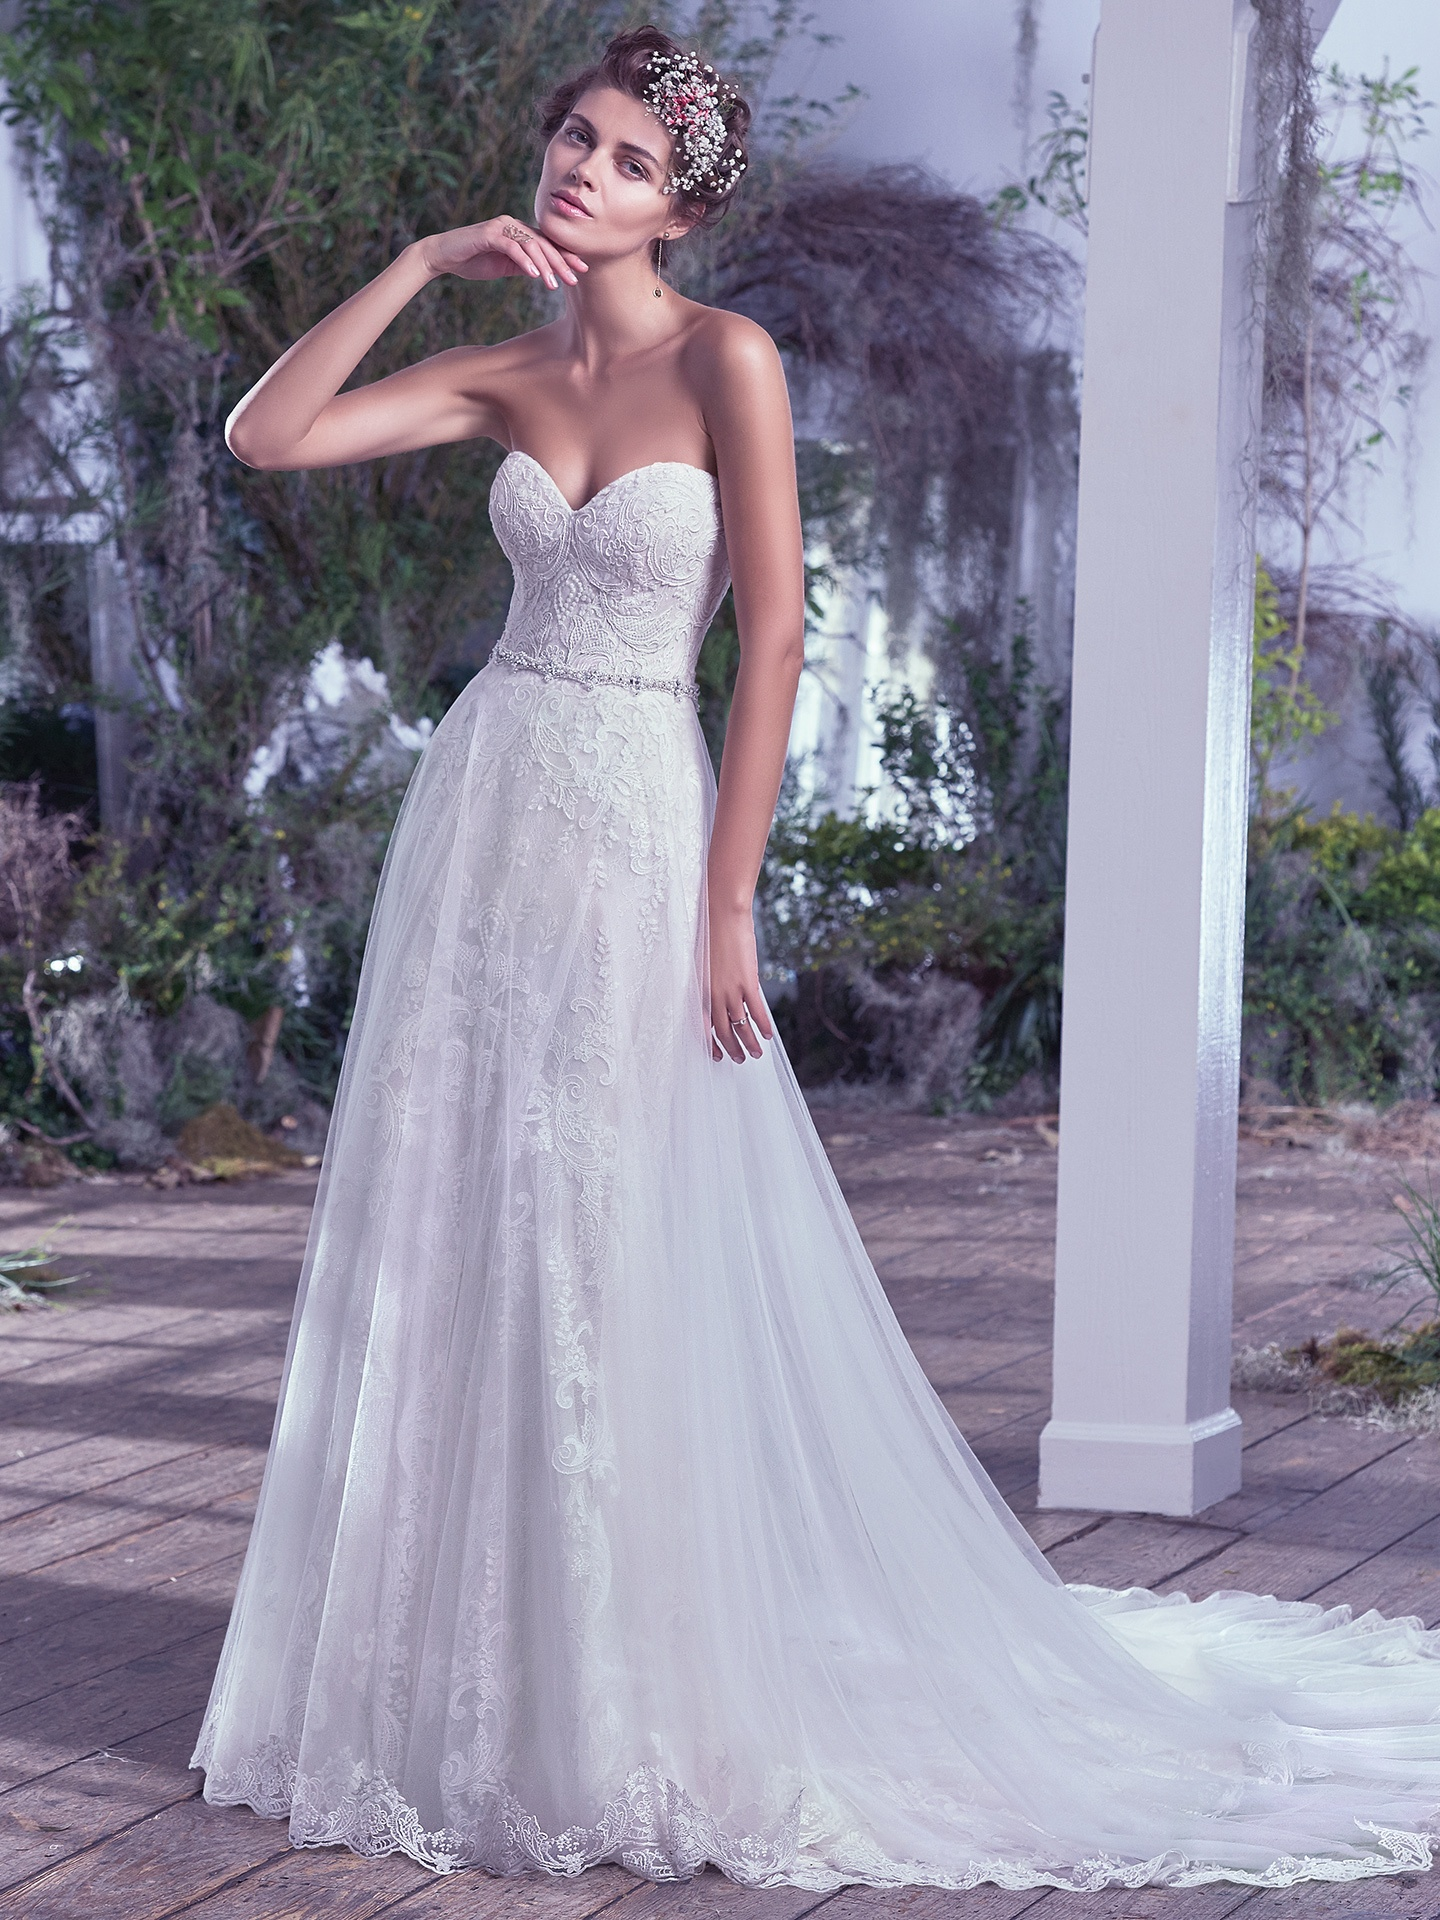 Mirelle by Maggie Sottero. Soft and romantic, this tulle and lace sheath wedding dress, with hand-placed lace appliqués is effortlessly elegant. The sweetheart neckline, natural waist, and scalloped hemline emphasize the ultra-feminine shape.